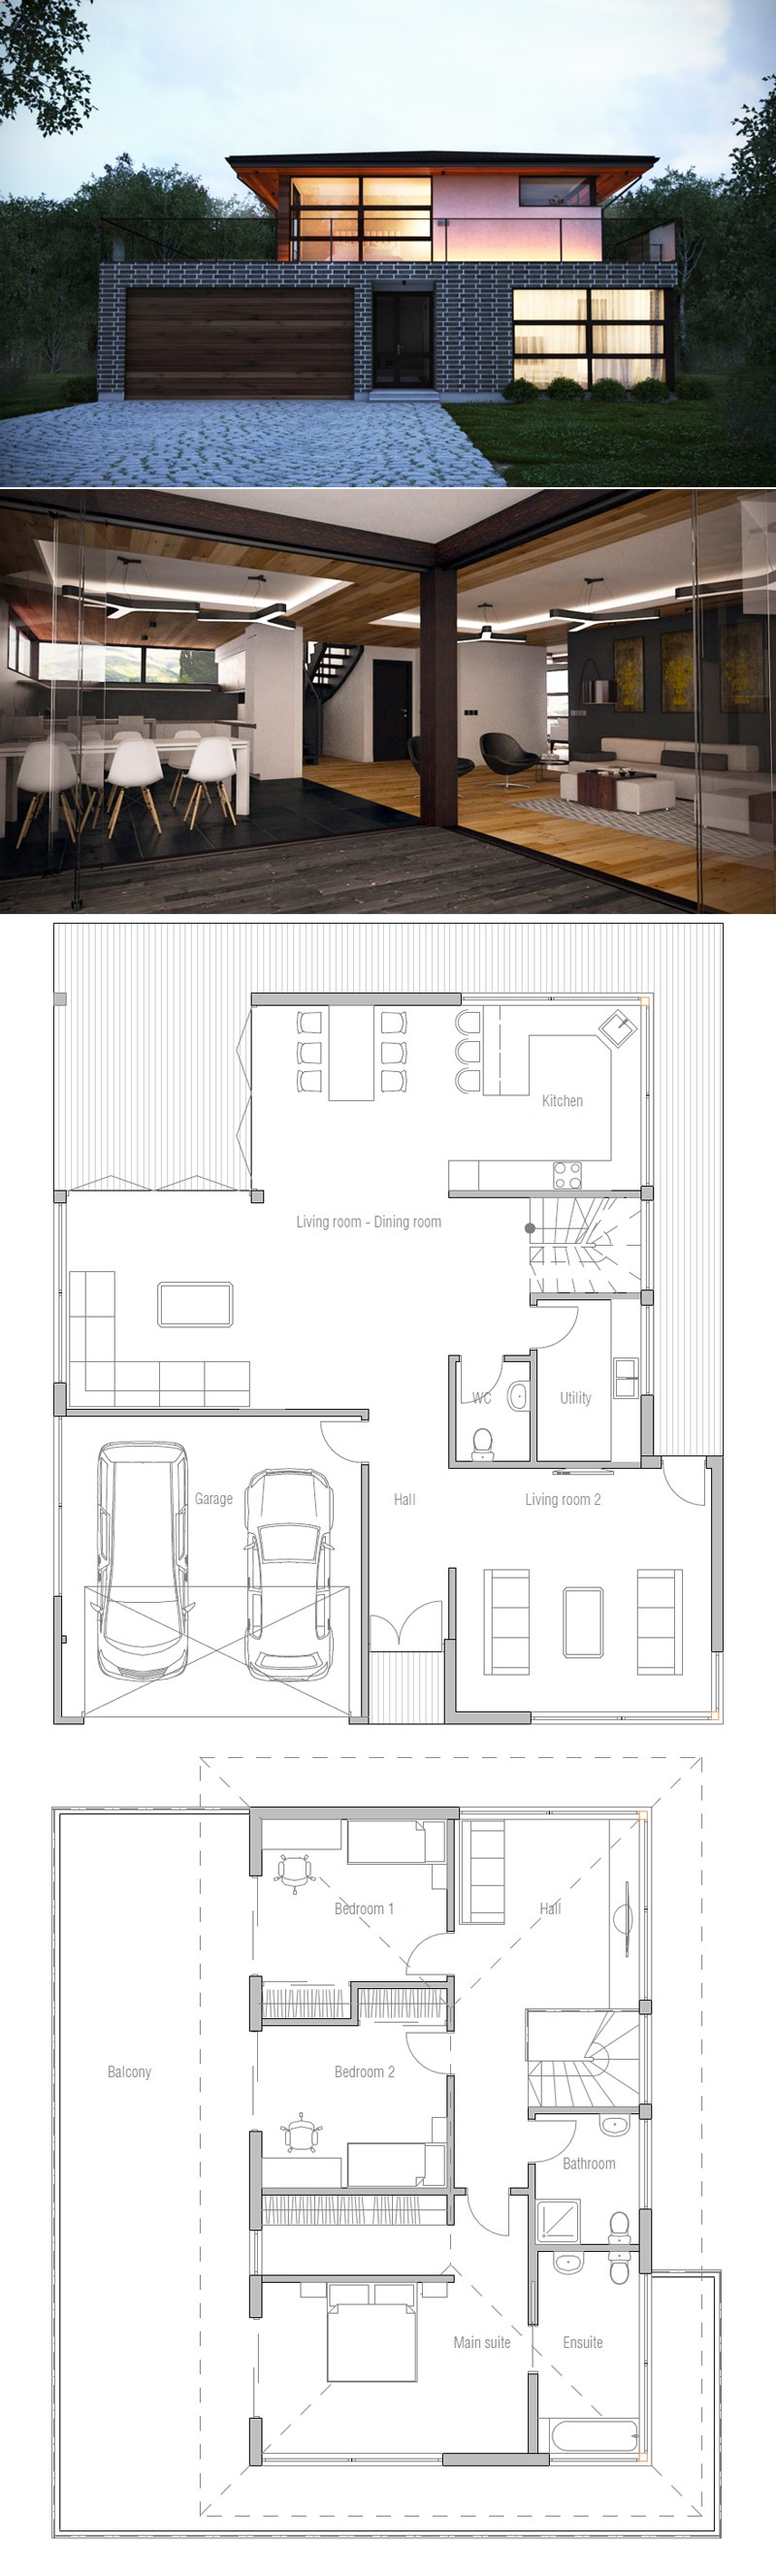 how to build a container home step by step pdf